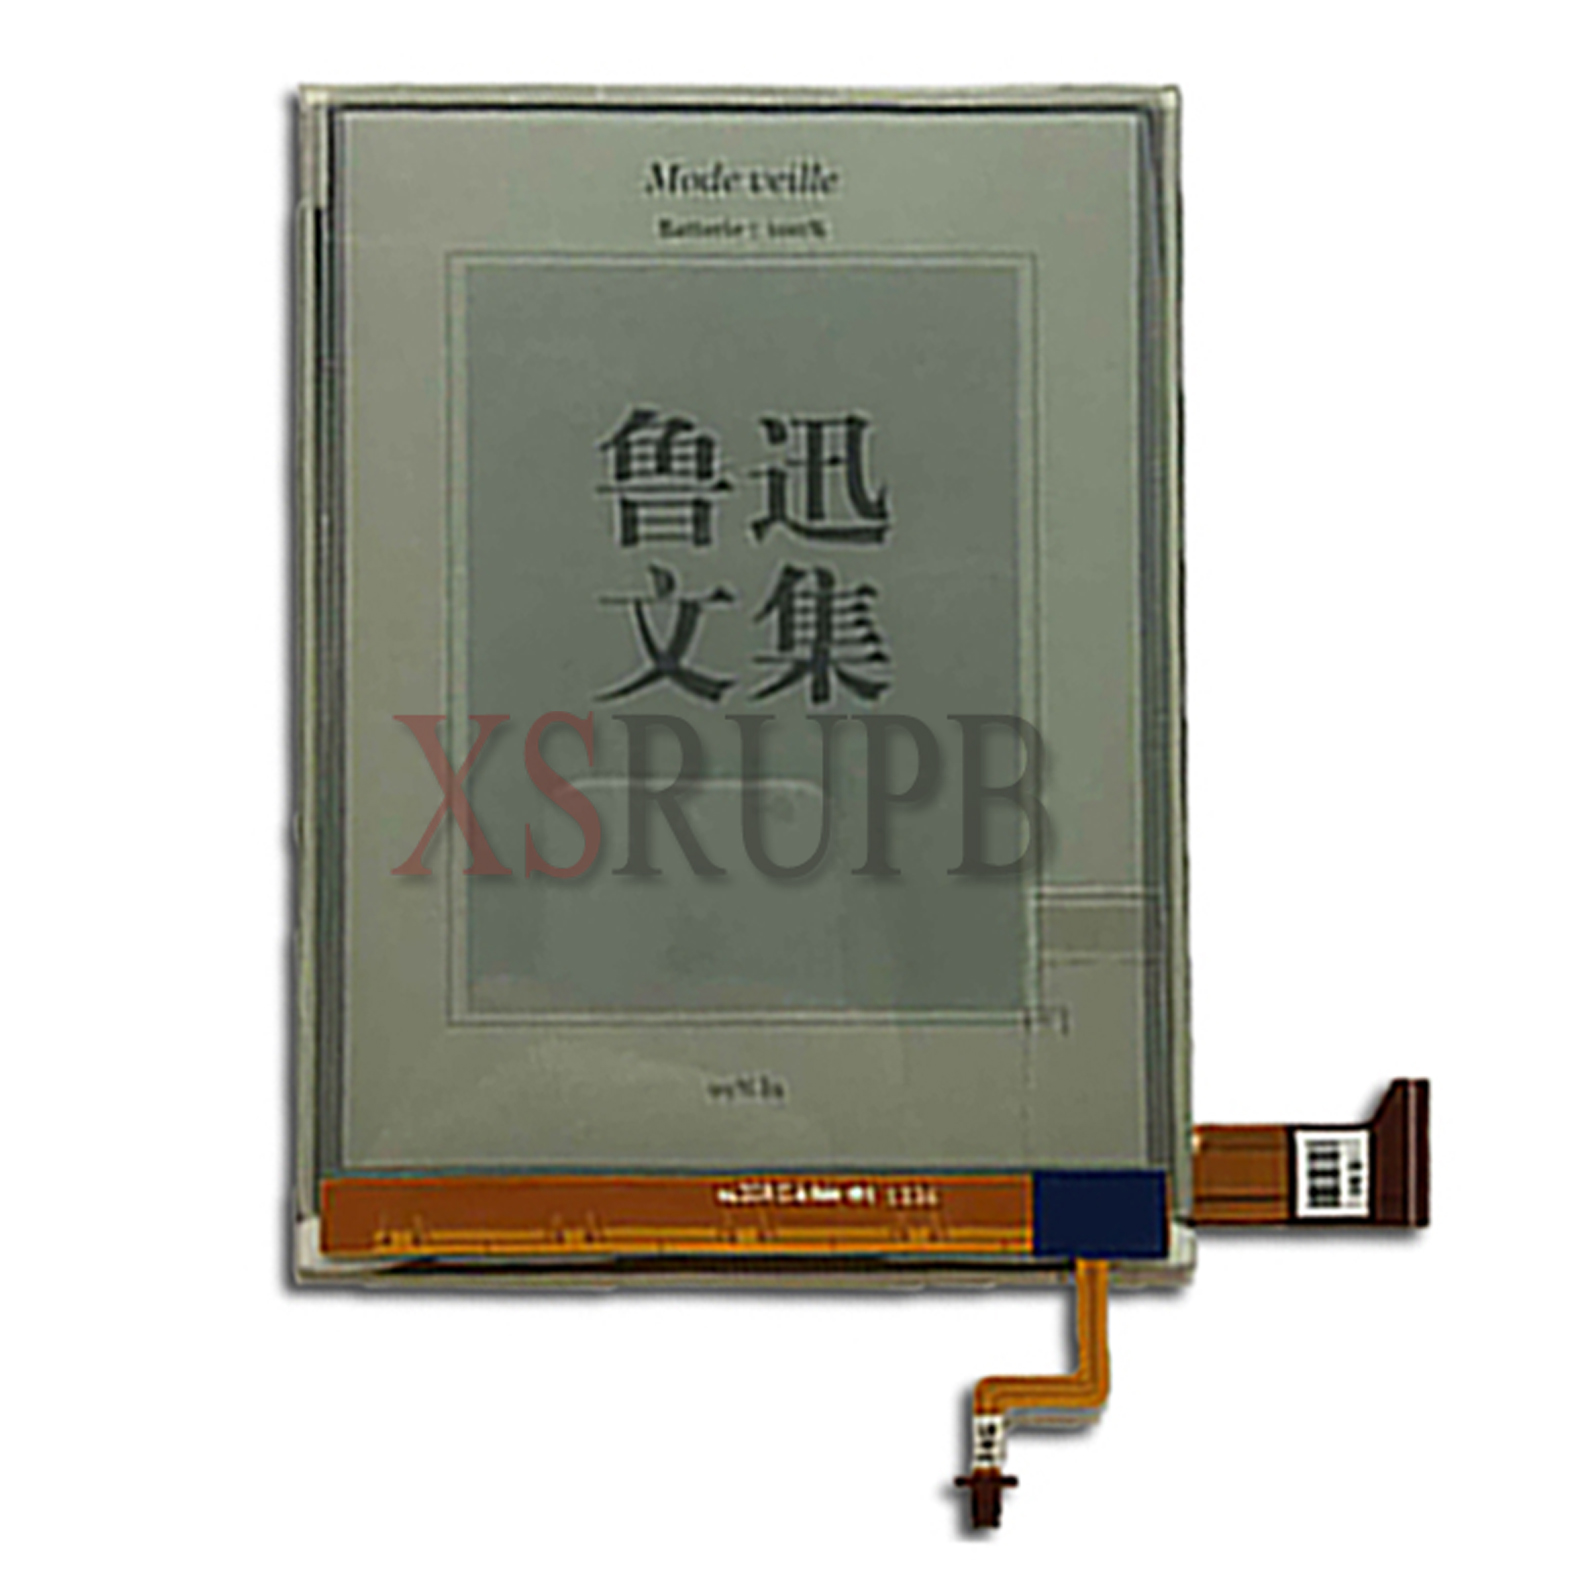 NEW Original 6.0inch E-Ink 768*1024 HD XGA Pearl Screen Glass For Onyx boox i62ml aurora Reader Ebook eReader LCD Display Panel original 6 inch touch screen lcd display for onyx boox c63l onyx boox c63ml magellan e book free shipping